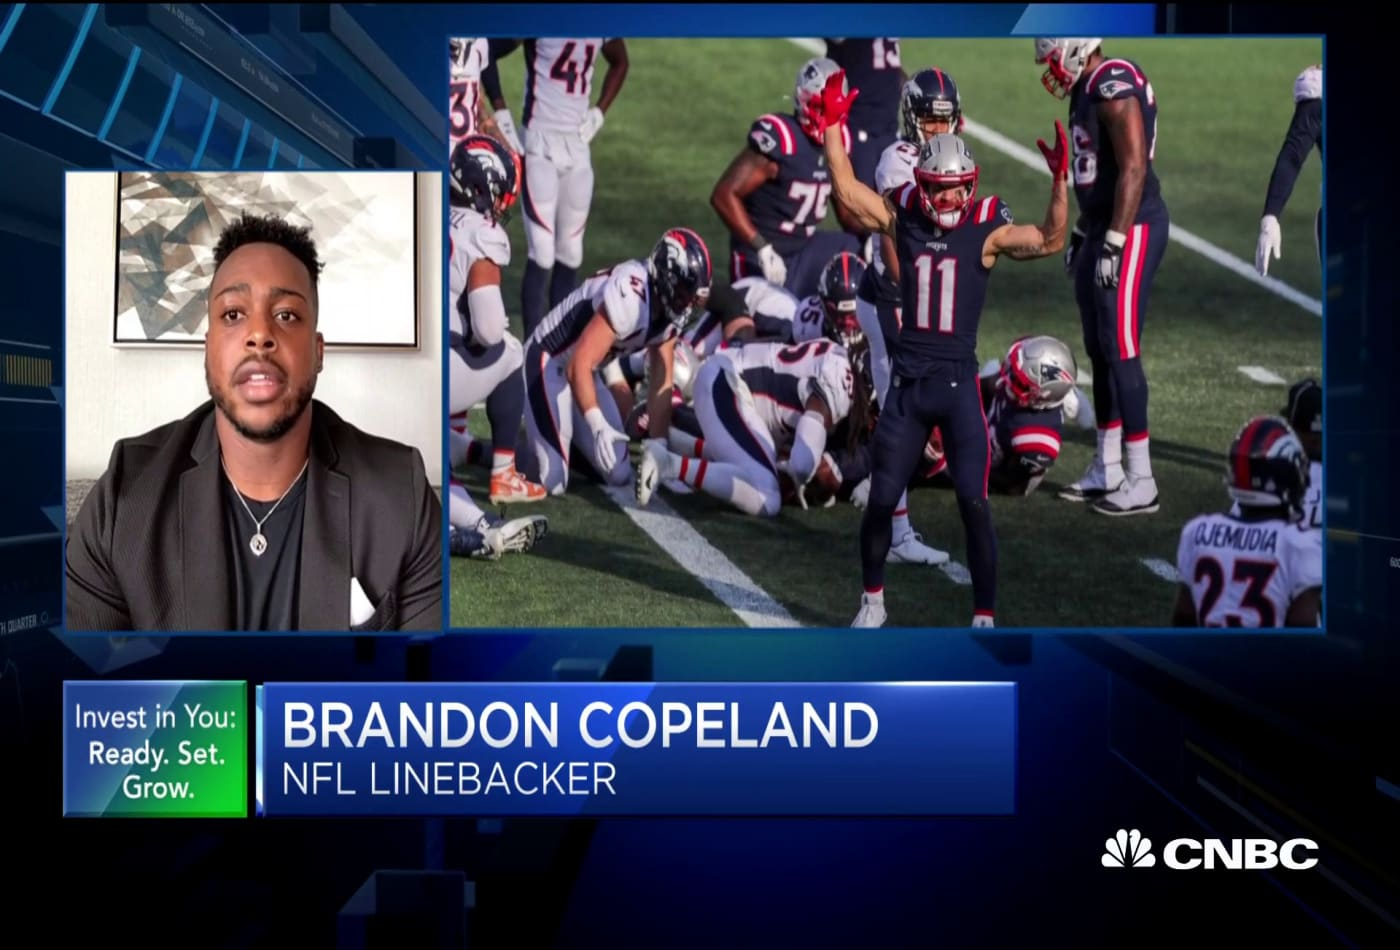 Patriots' Copeland on money management: Pay off debt, find new long-term investments